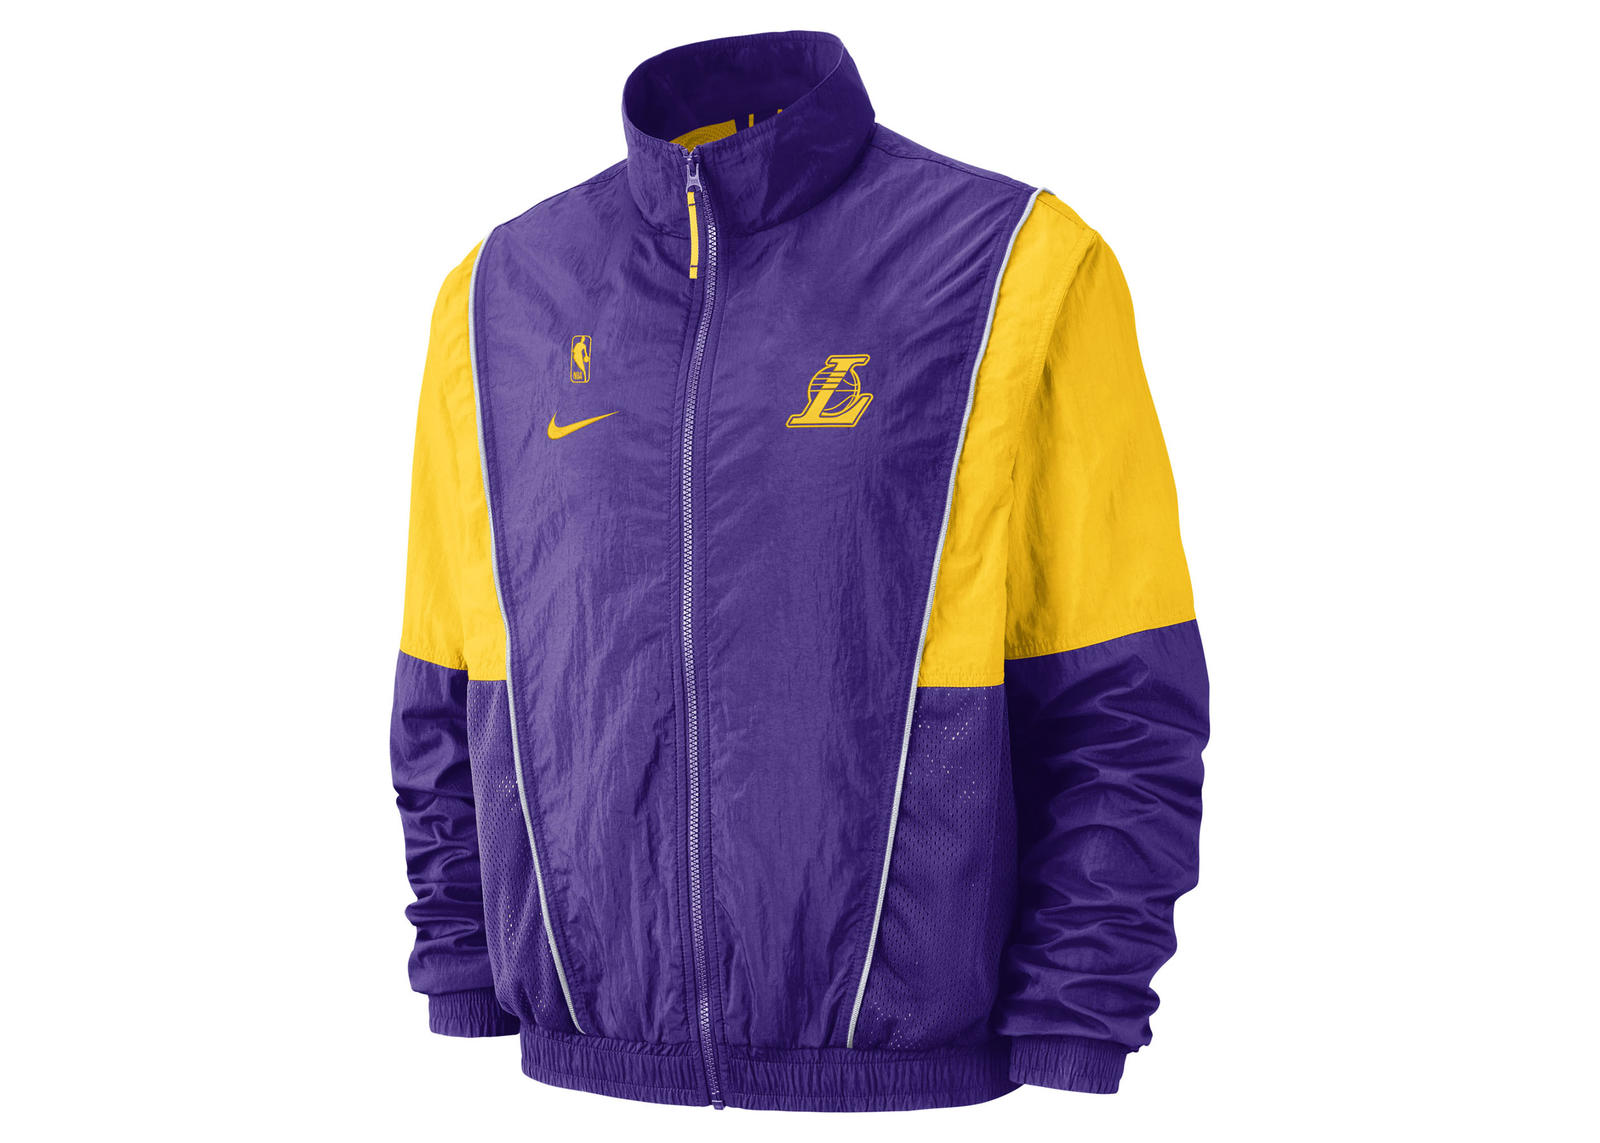 Nba lakerstracksuit 2018 16x9 rectangle 1600